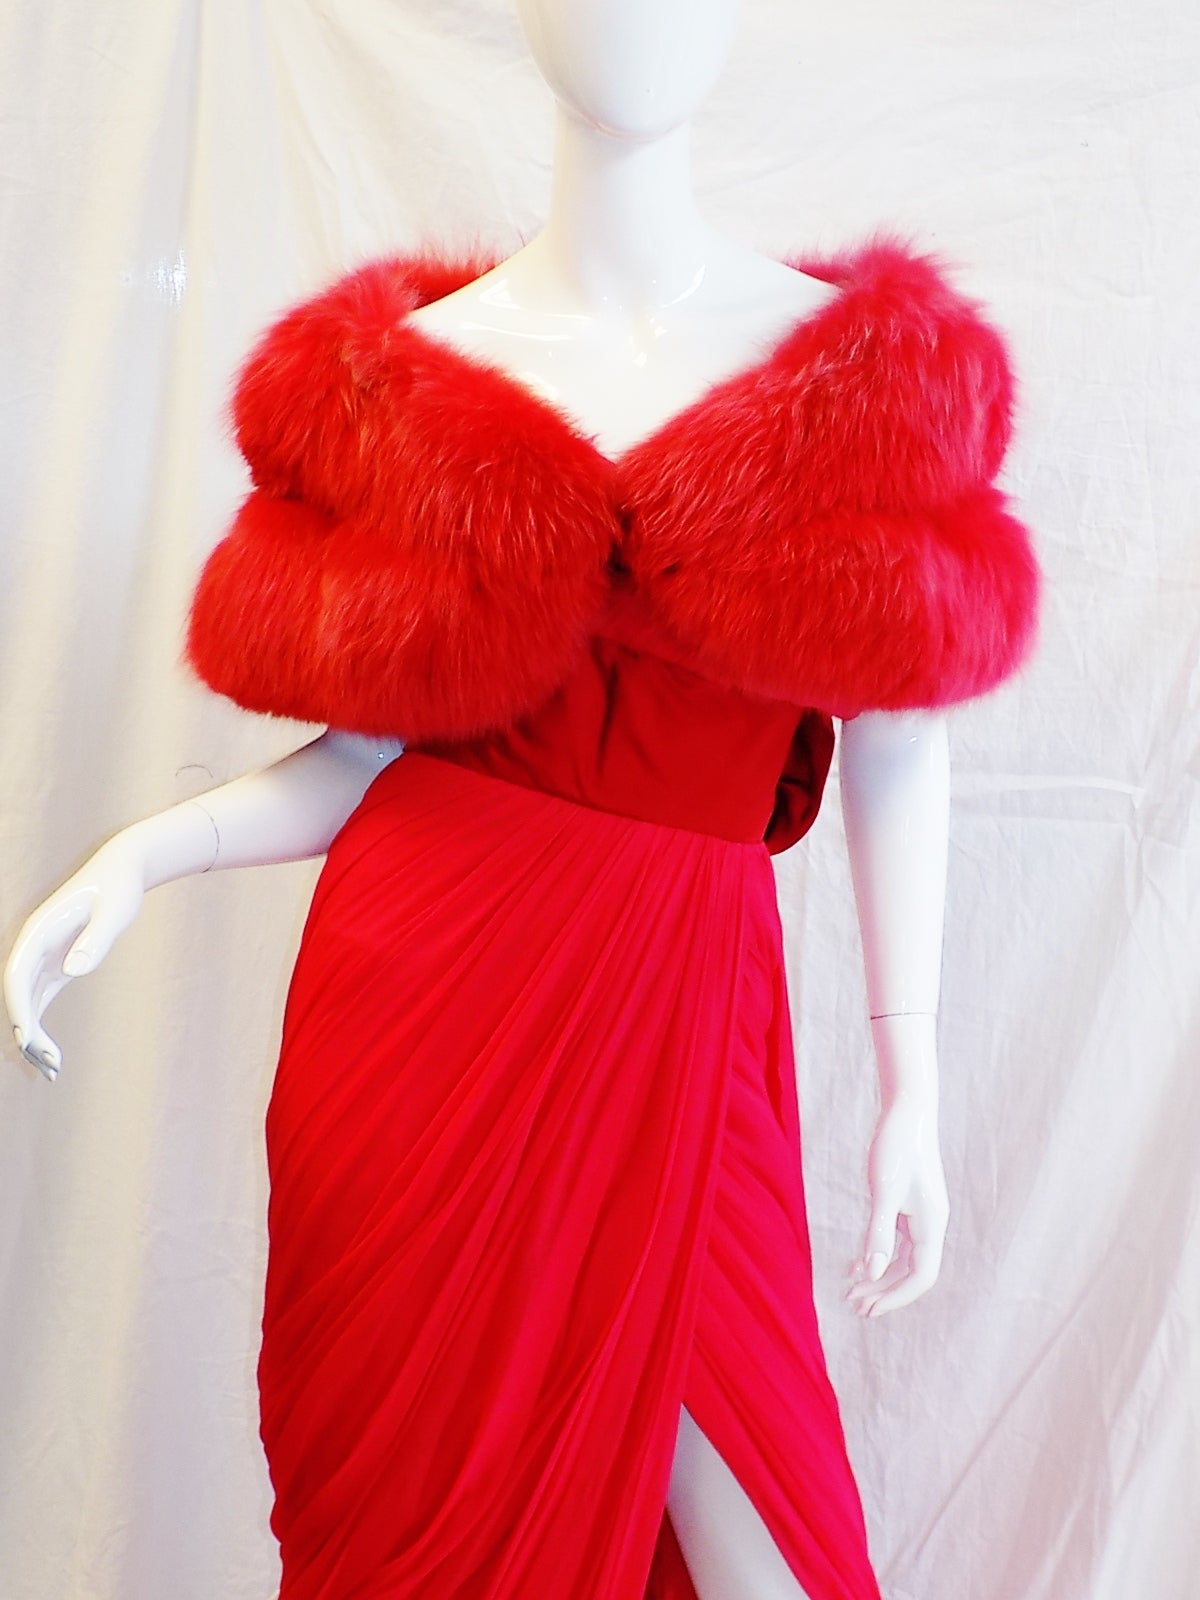 Iconic Jean Dessès Red draped gown with Fox fur stole 1950's In Excellent Condition For Sale In New York, NY